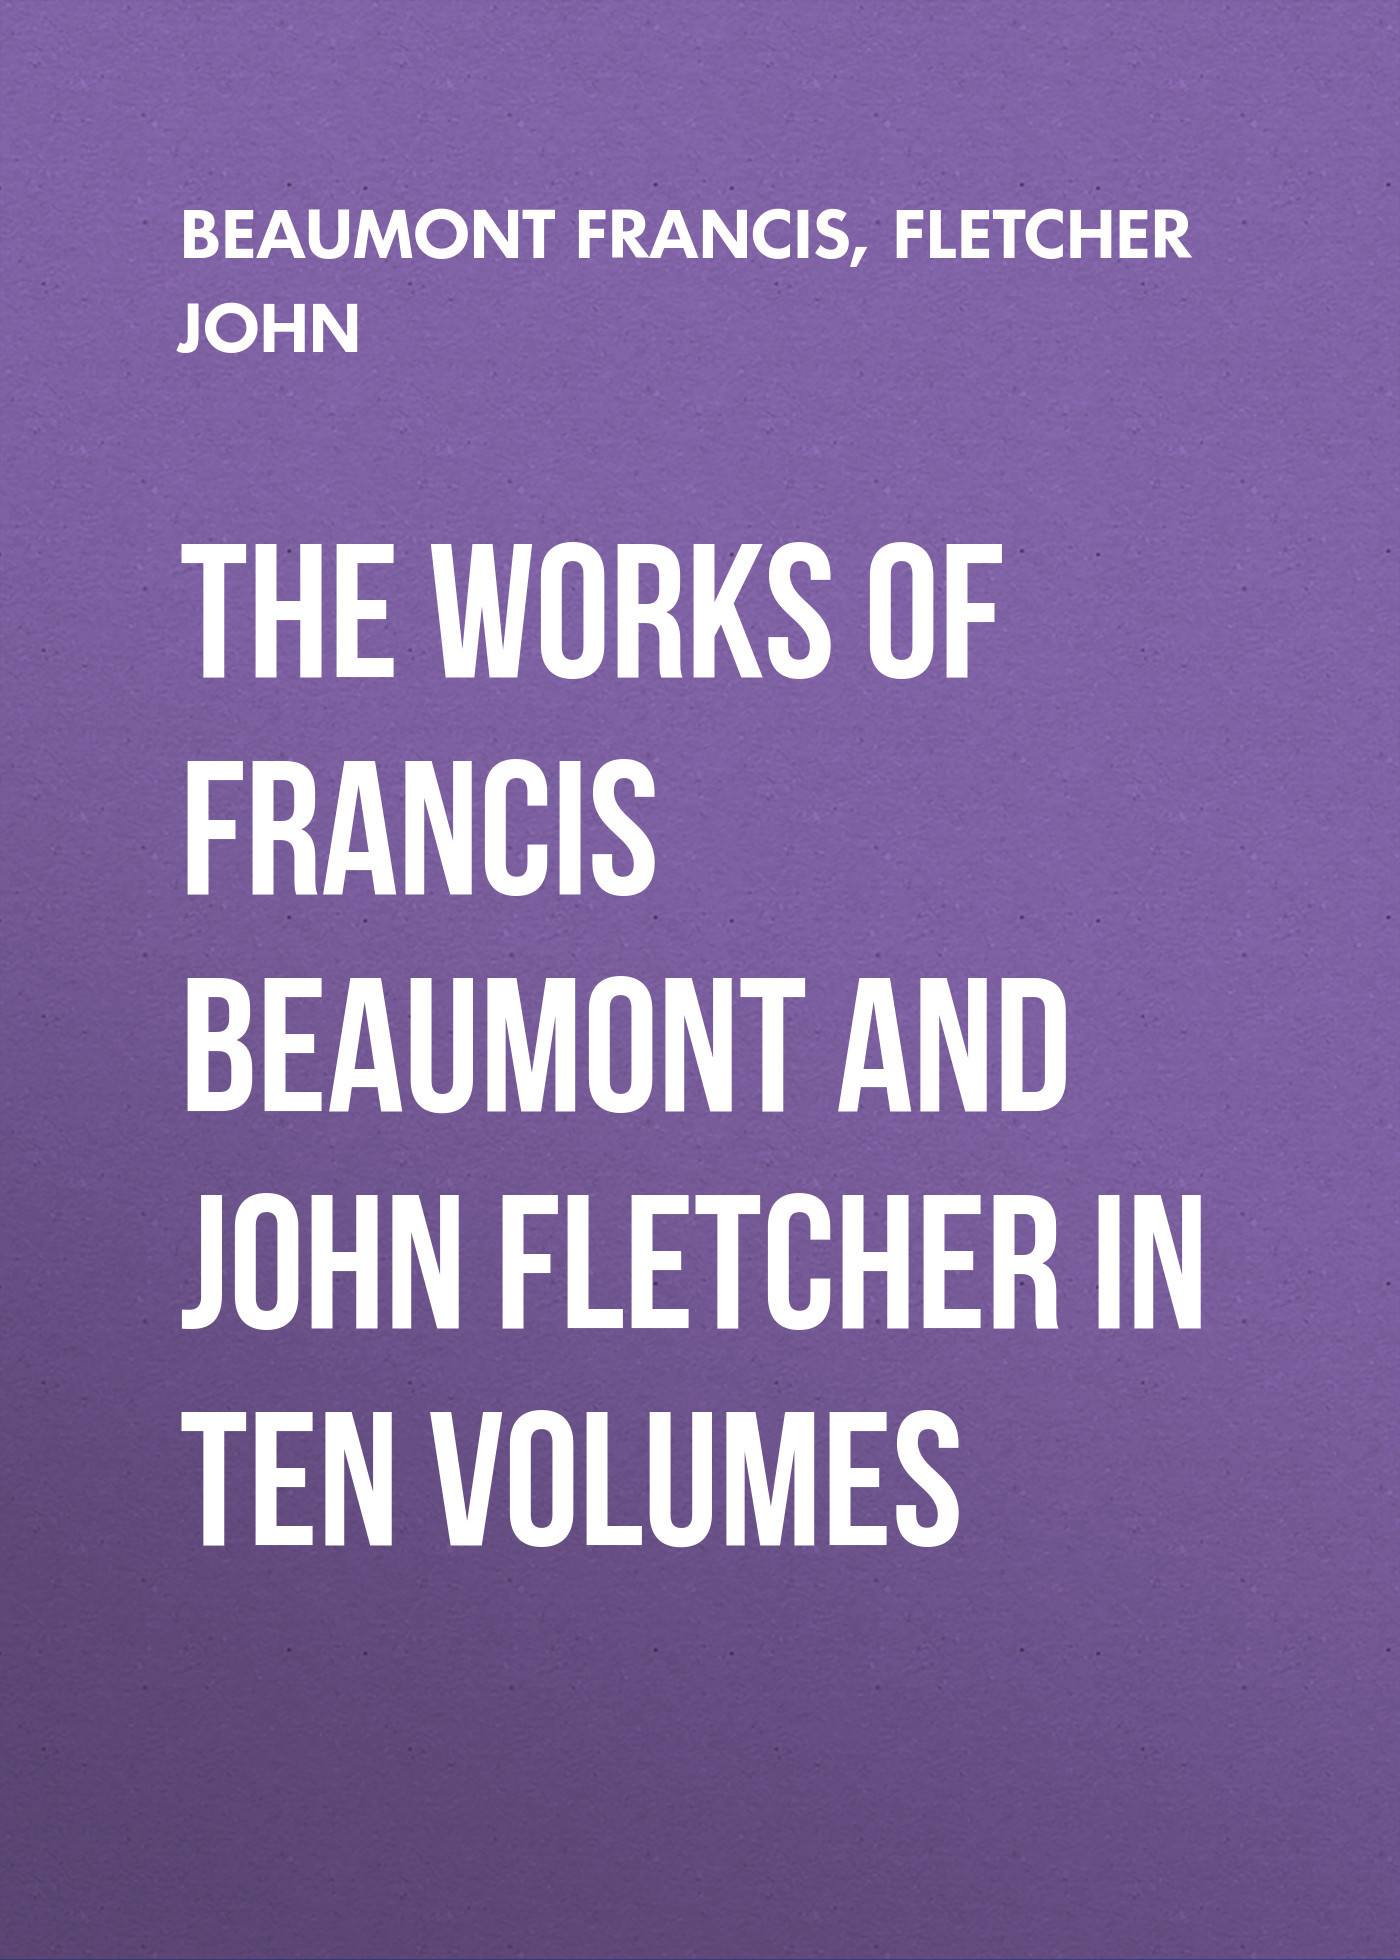 Beaumont Francis The Works of Francis Beaumont and John Fletcher in Ten Volumes gayley charles mills francis beaumont dramatist